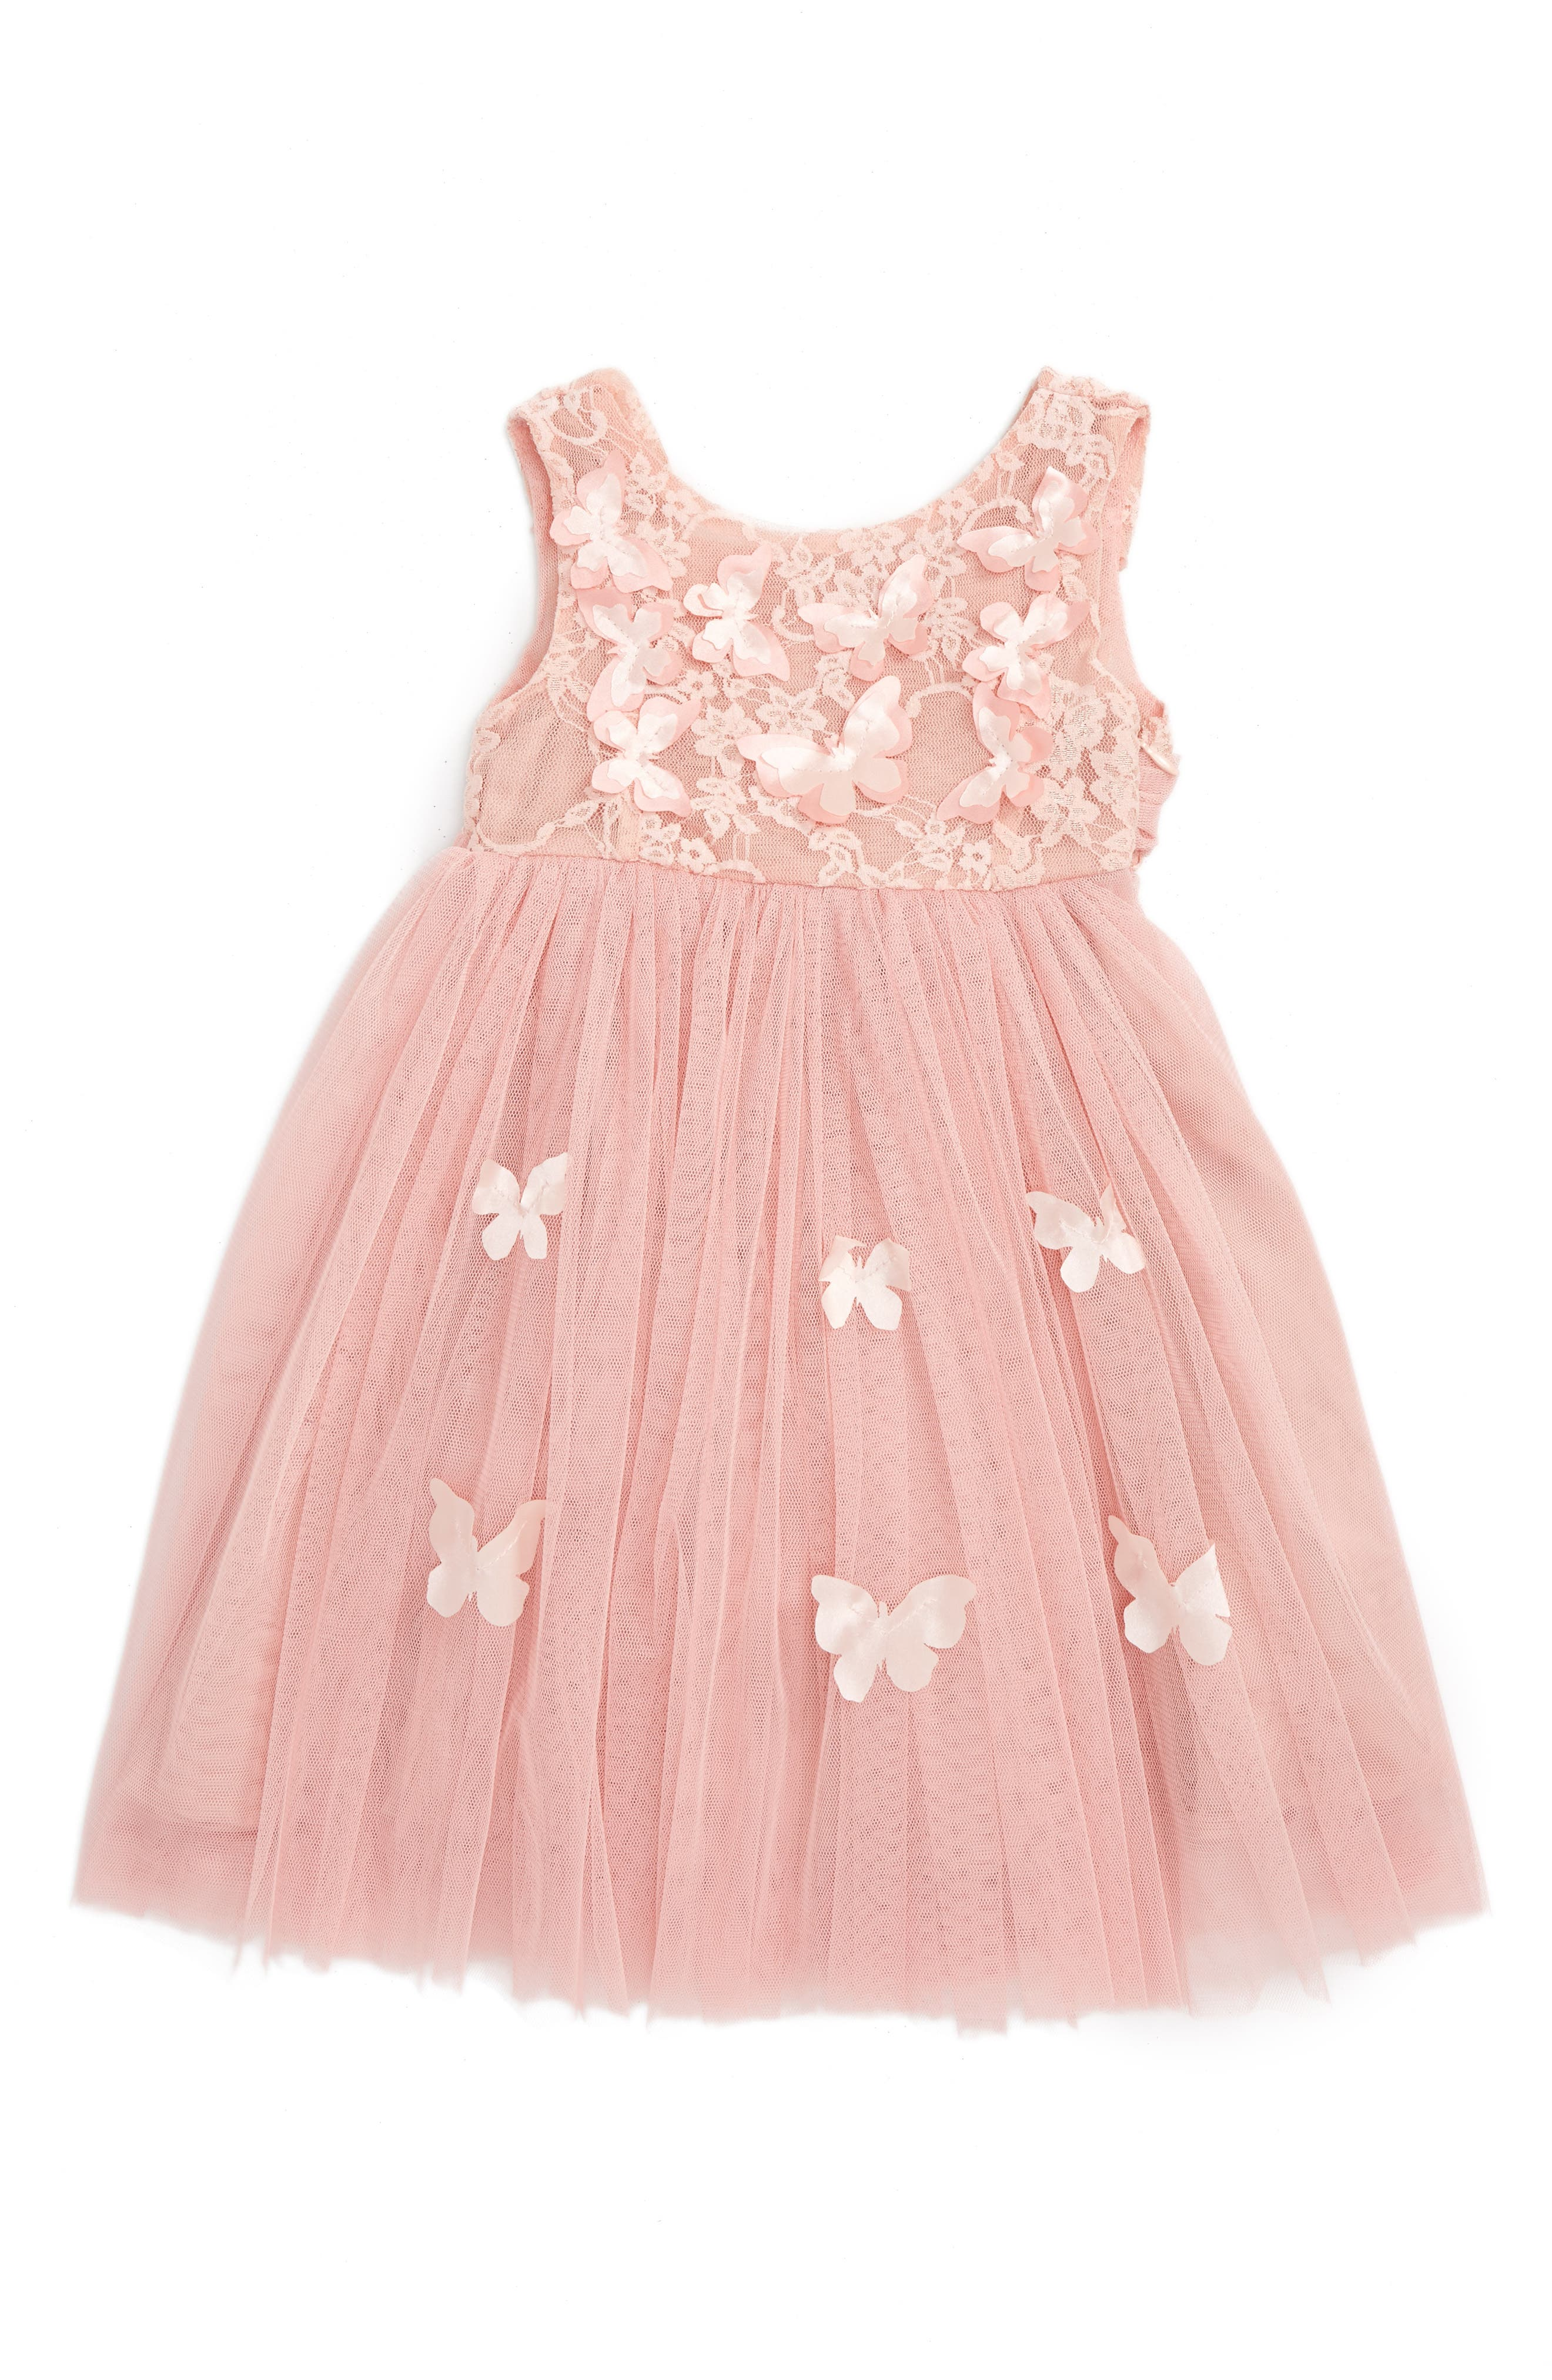 Butterfly Sleeveless Dress,                             Main thumbnail 1, color,                             DUSTY PINK